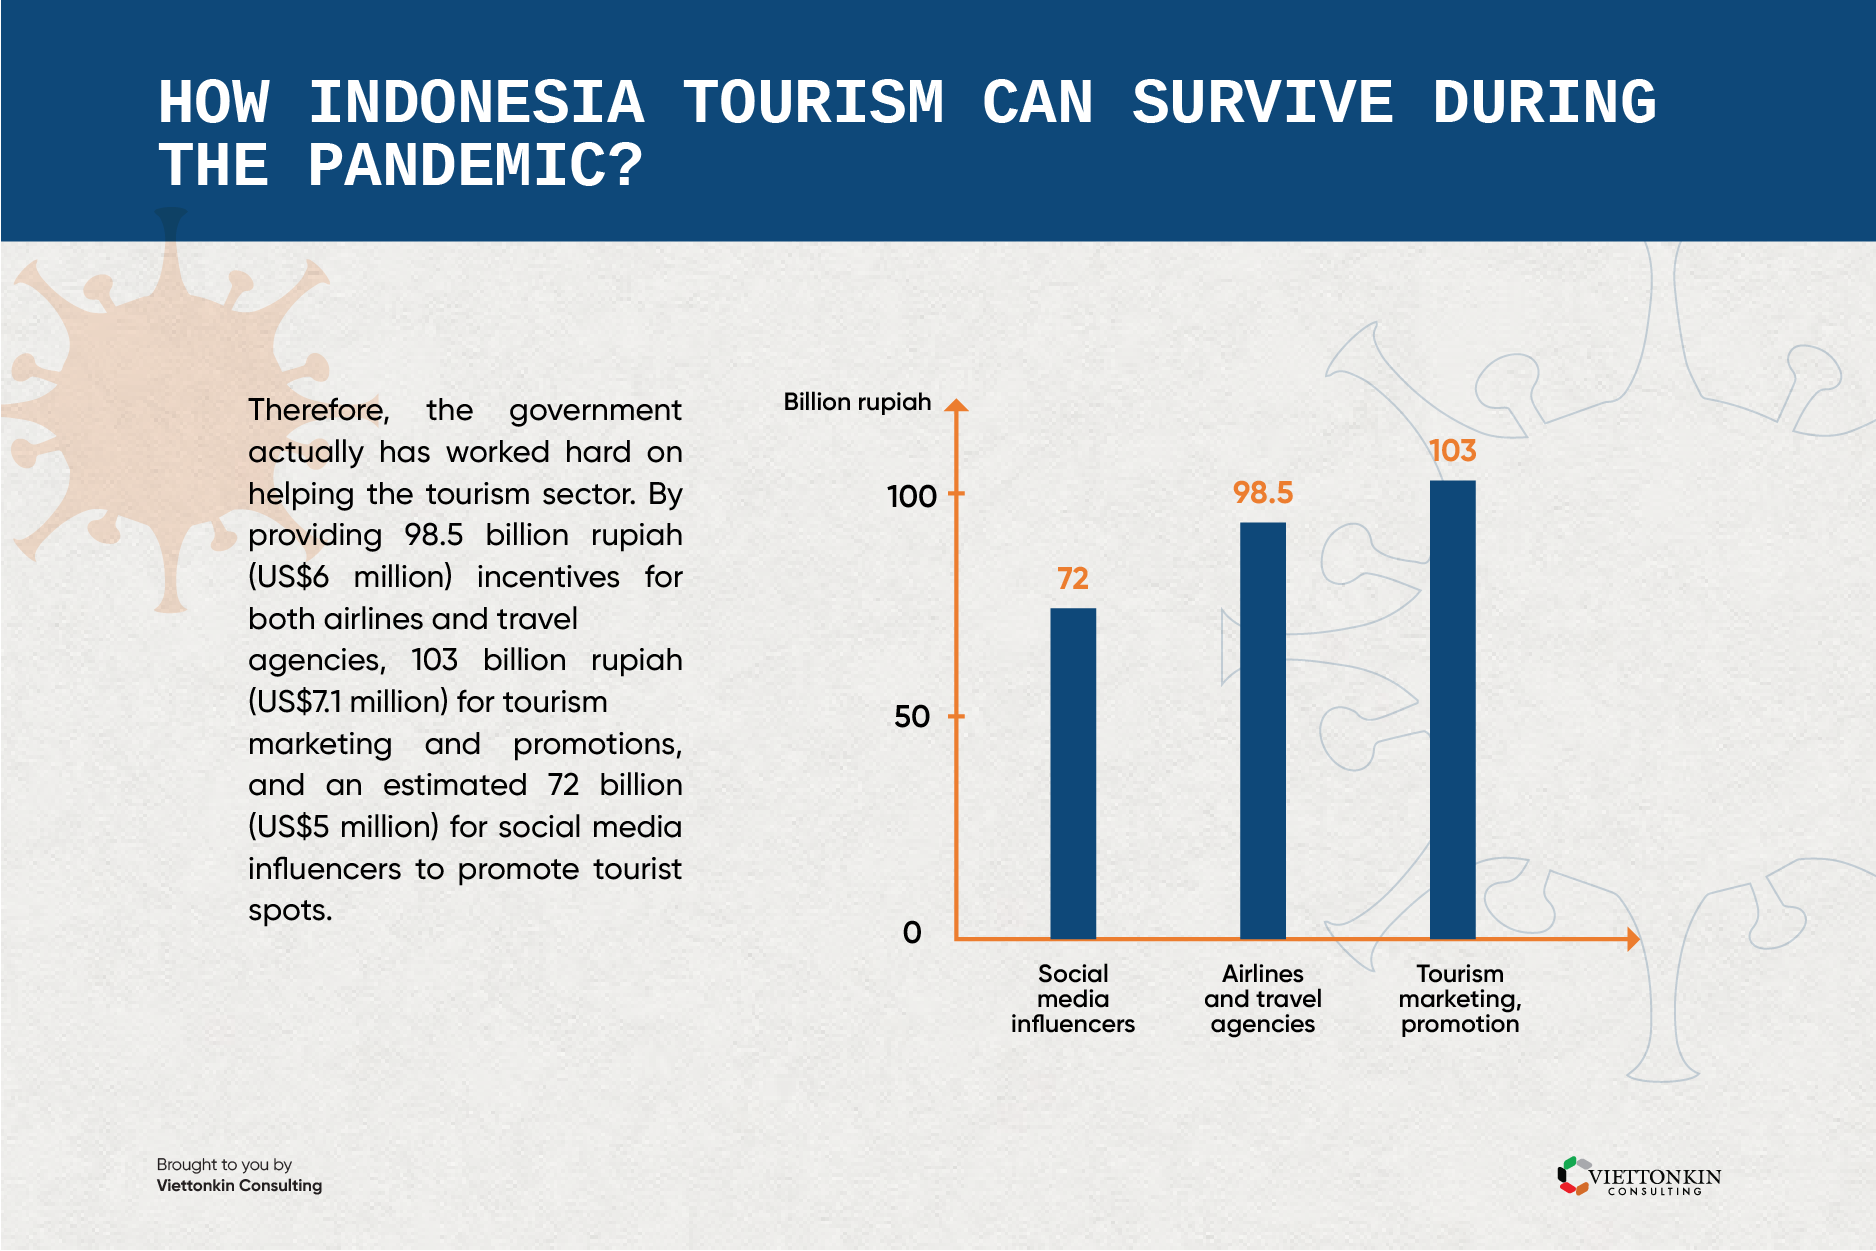 How Indonesia tourism can survive during the pandemic